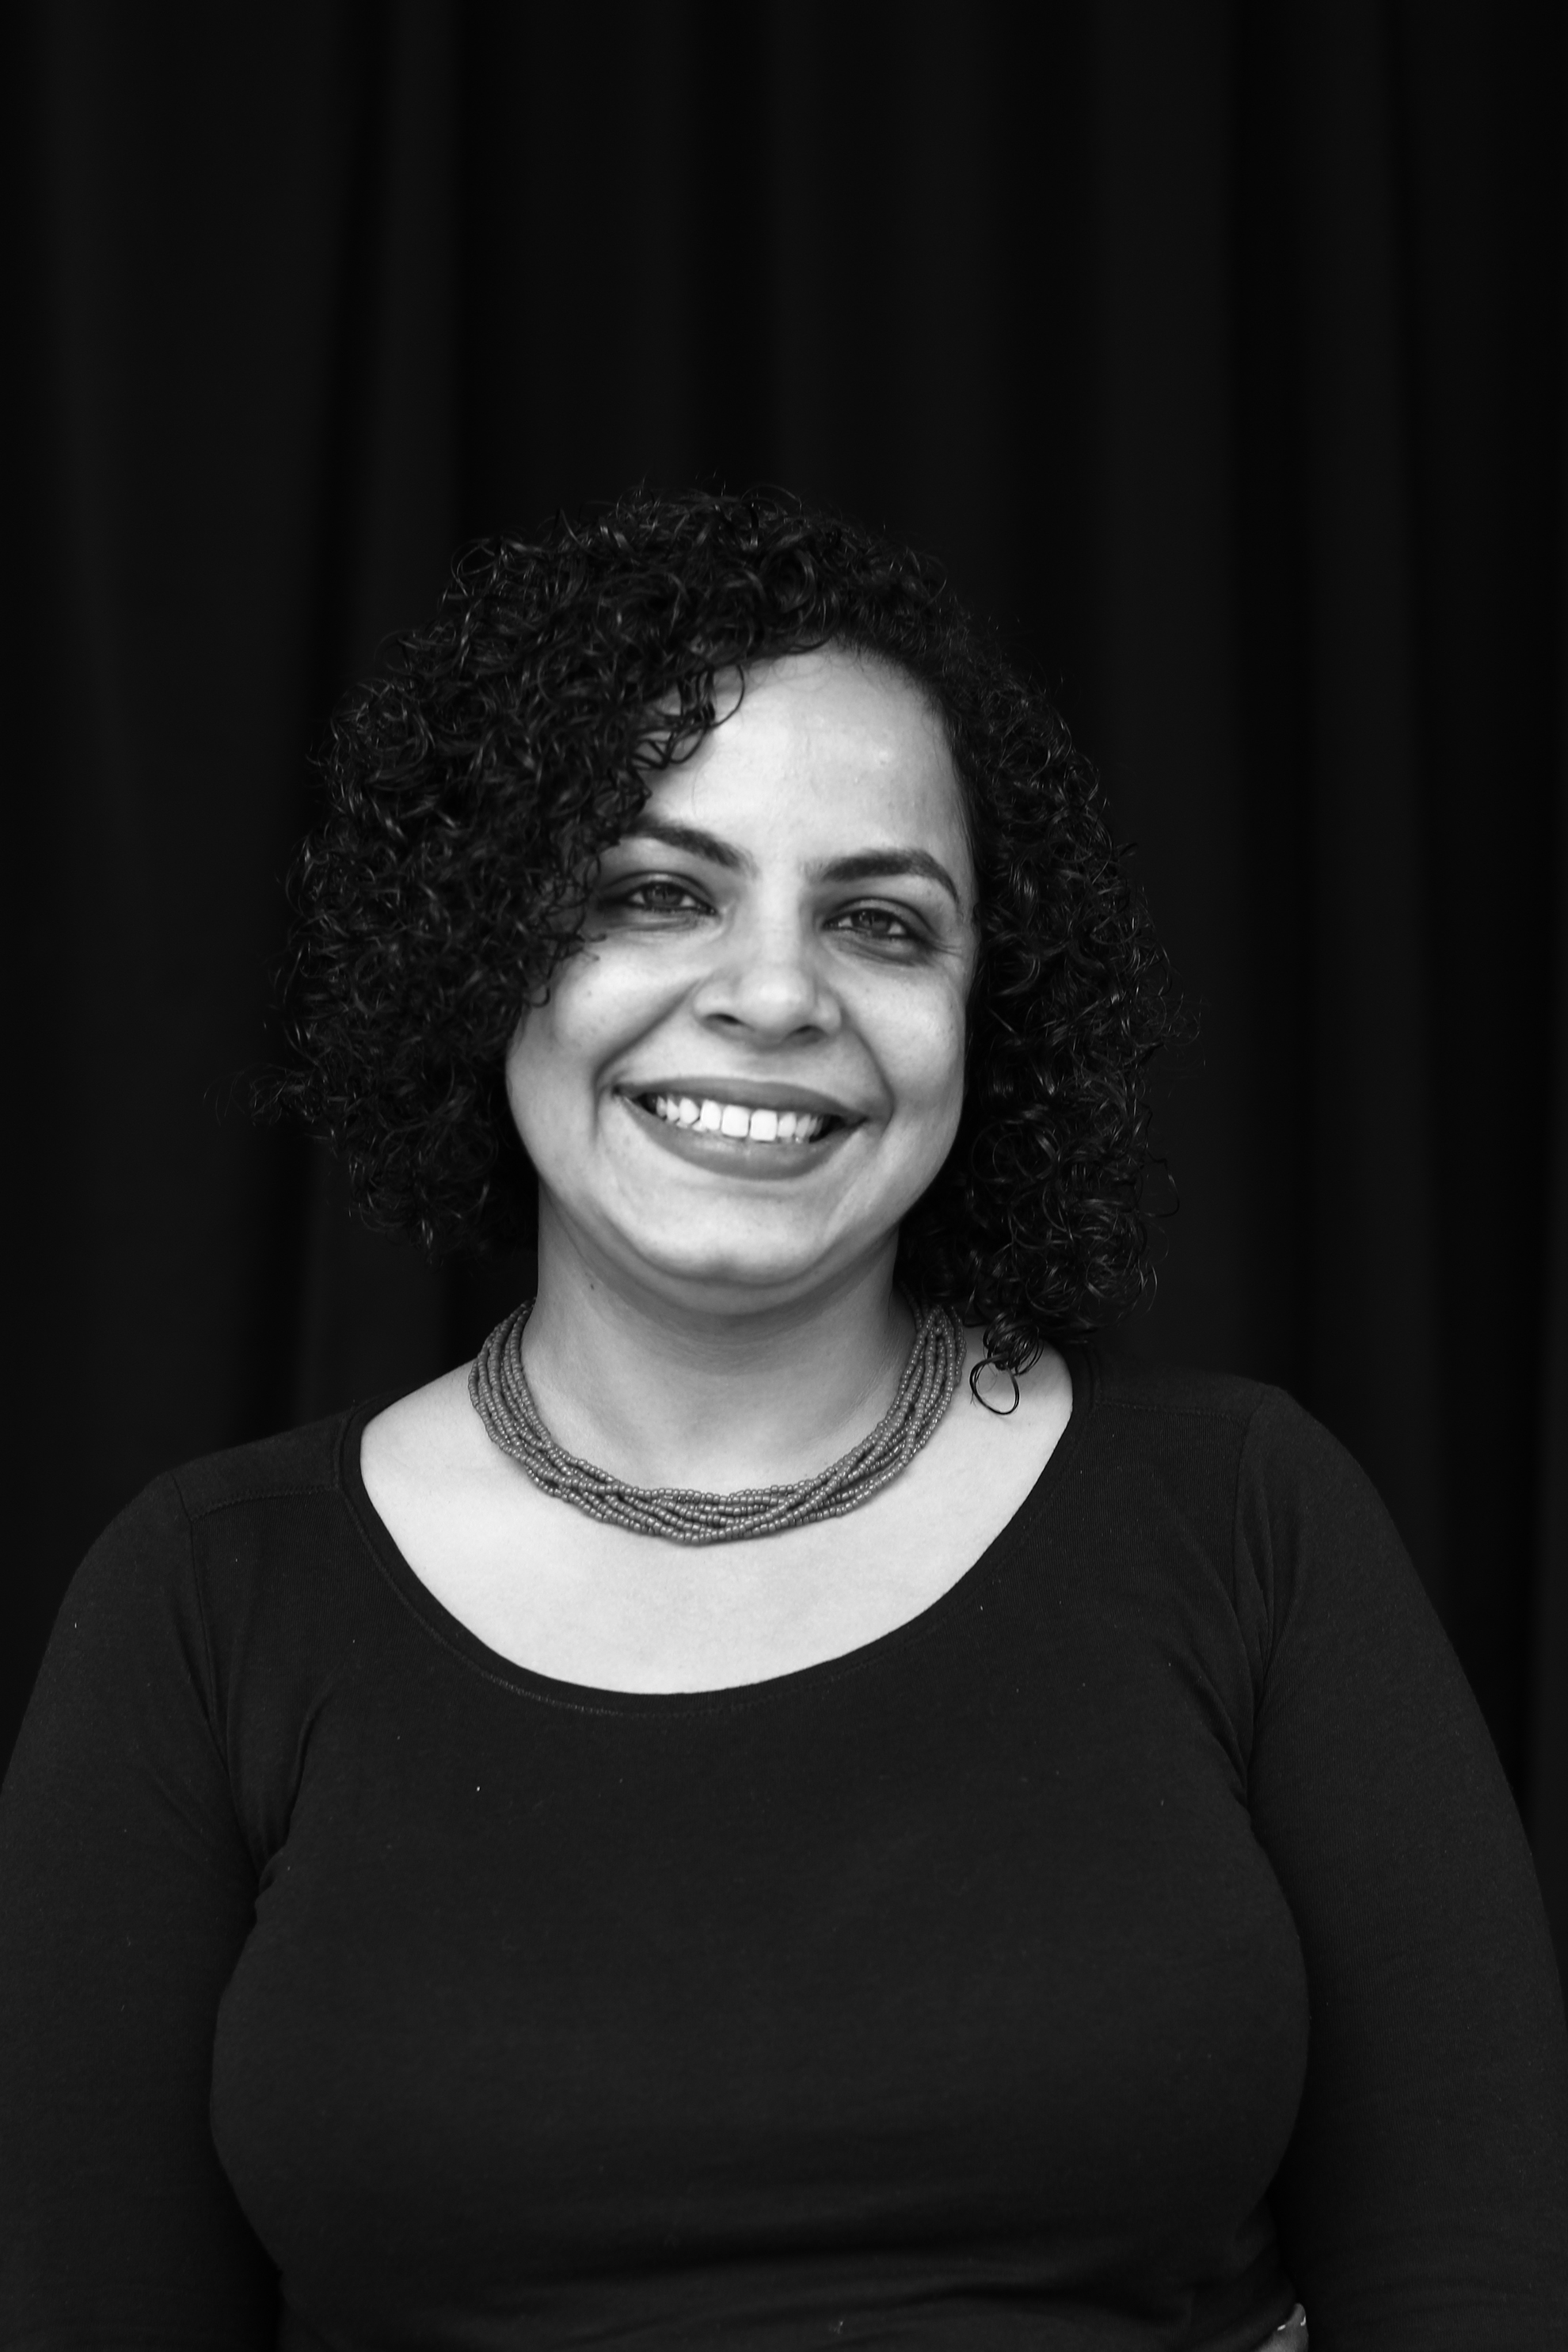 Mandakini gahlot  is a Journalist and Filmmaker based in india. she is a Contributor to France 24, Al-Jazeera and others  READ FULL BIO HERE .  VIEW HER WORK HERE . MENTORSHIP BEAT: human rights and politics in india.